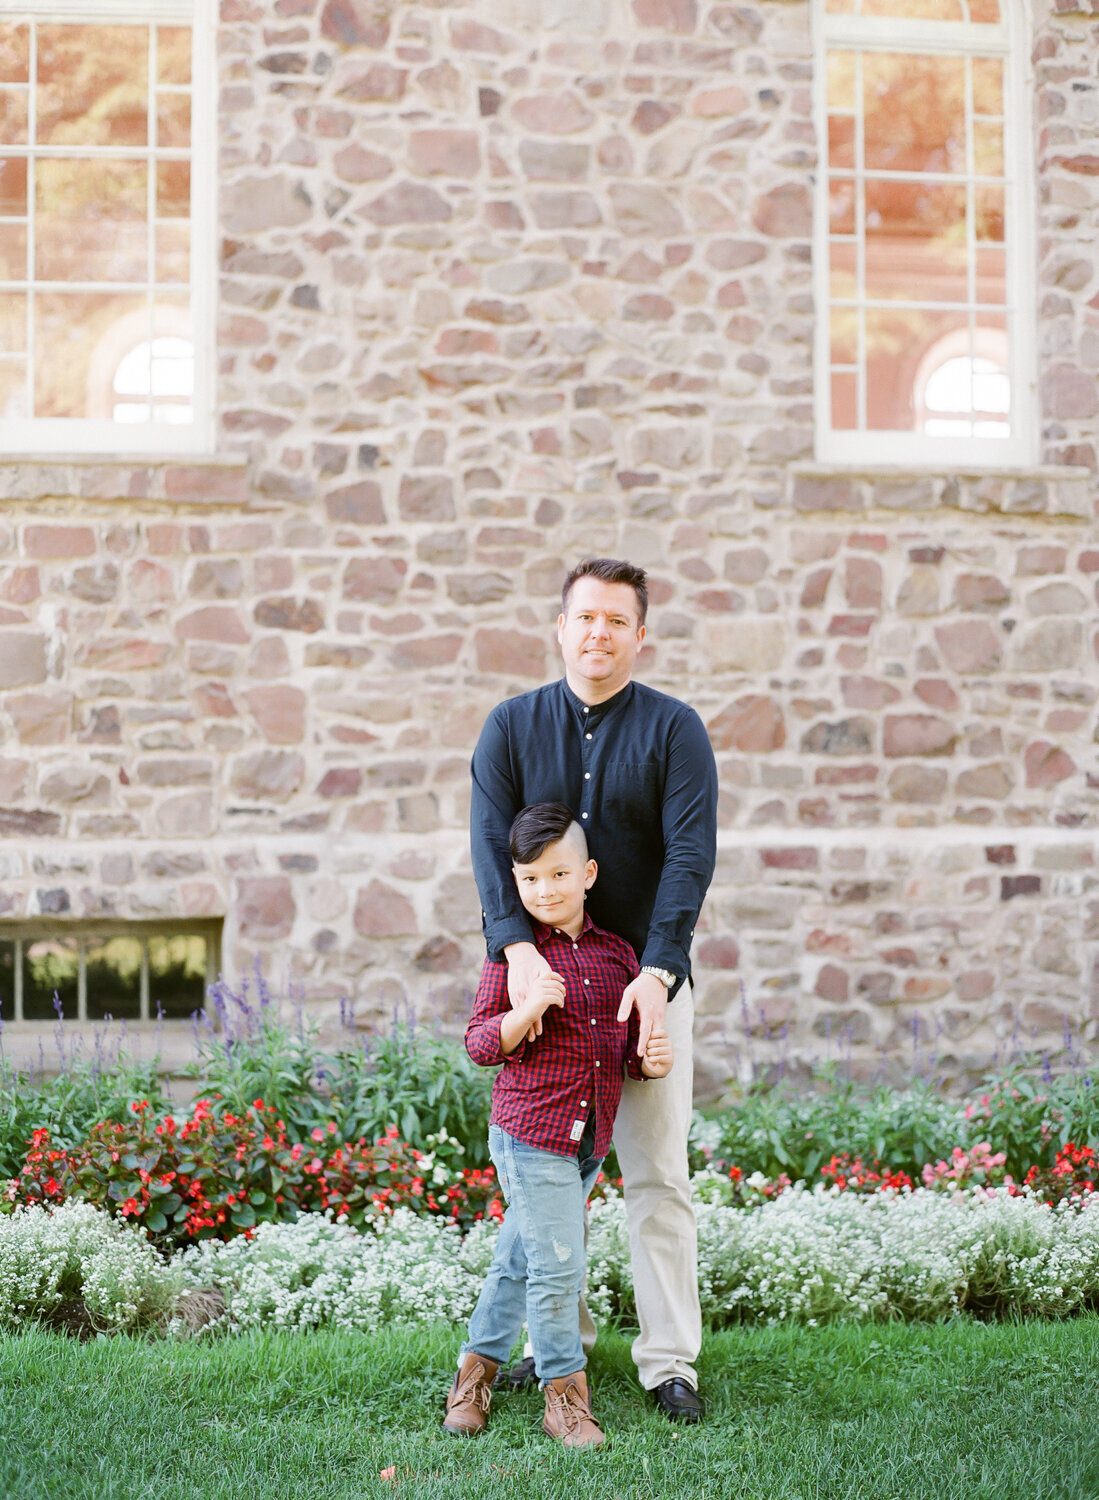 Jacqueline Anne Photography - Family Photographer in Halifax-12